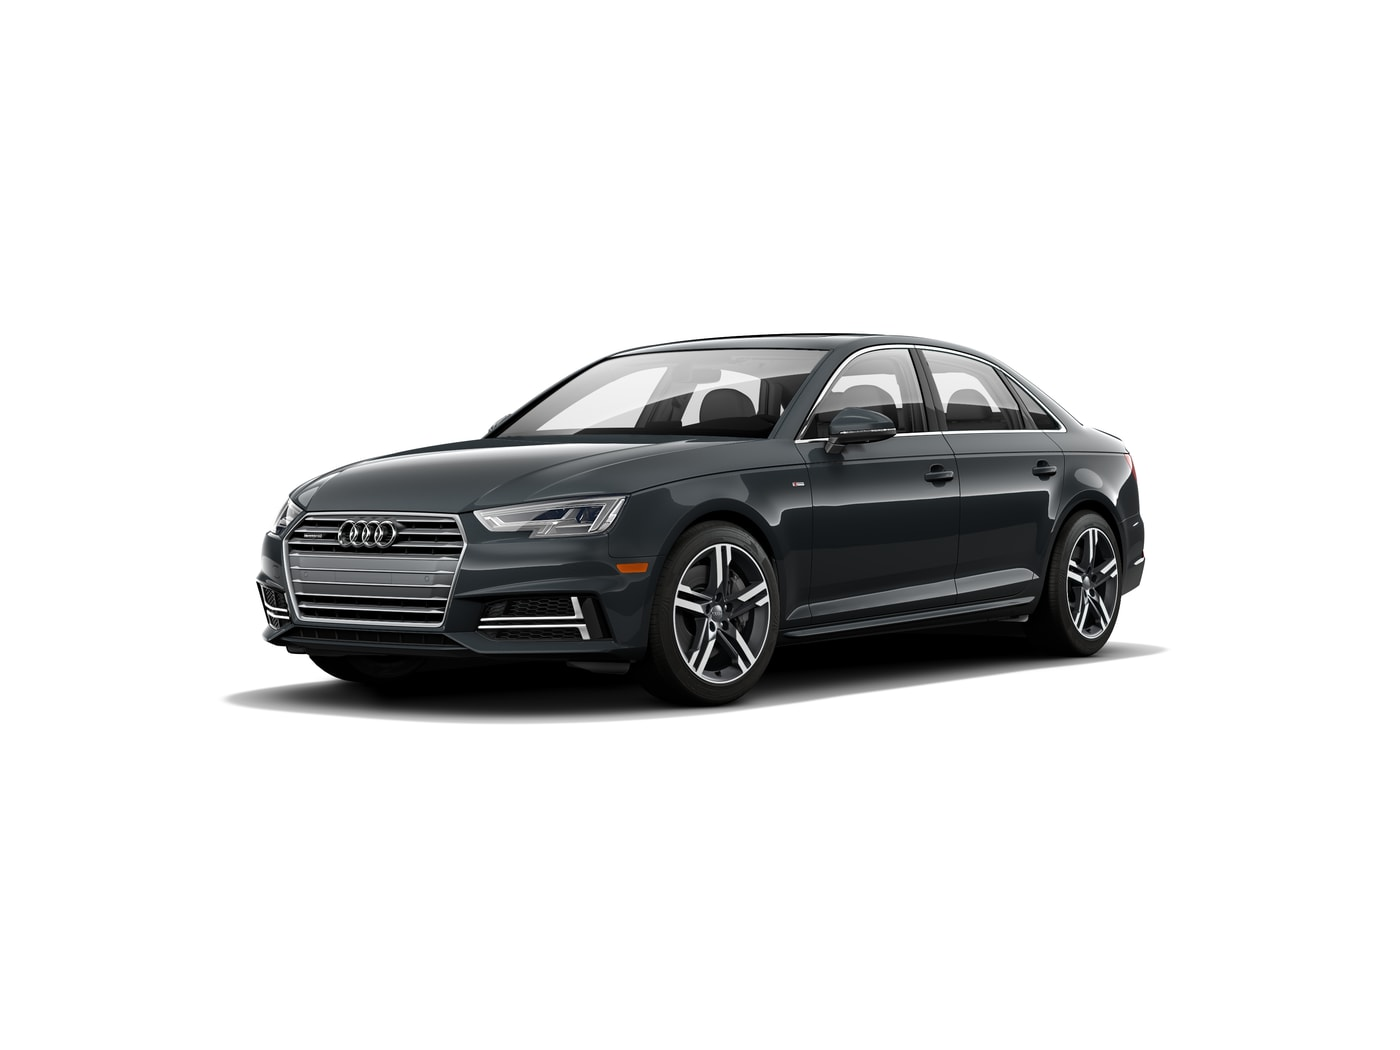 New 2018 Audi A4 2.0T Tech Premium Sedan Los Angeles